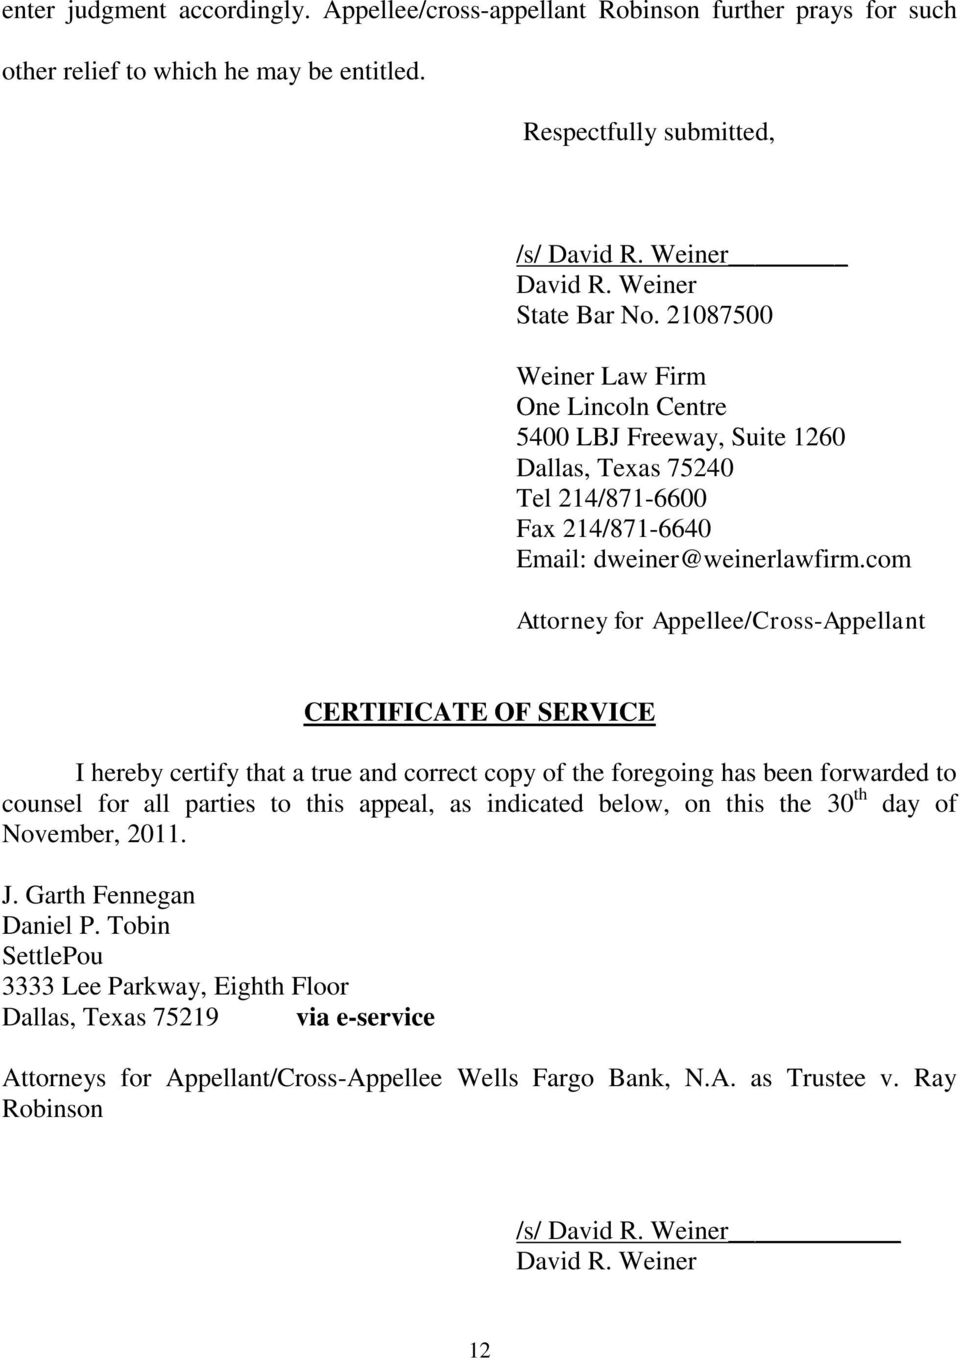 com Attorney for Appellee/Cross-Appellant CERTIFICATE OF SERVICE I hereby certify that a true and correct copy of the foregoing has been forwarded to counsel for all parties to this appeal, as